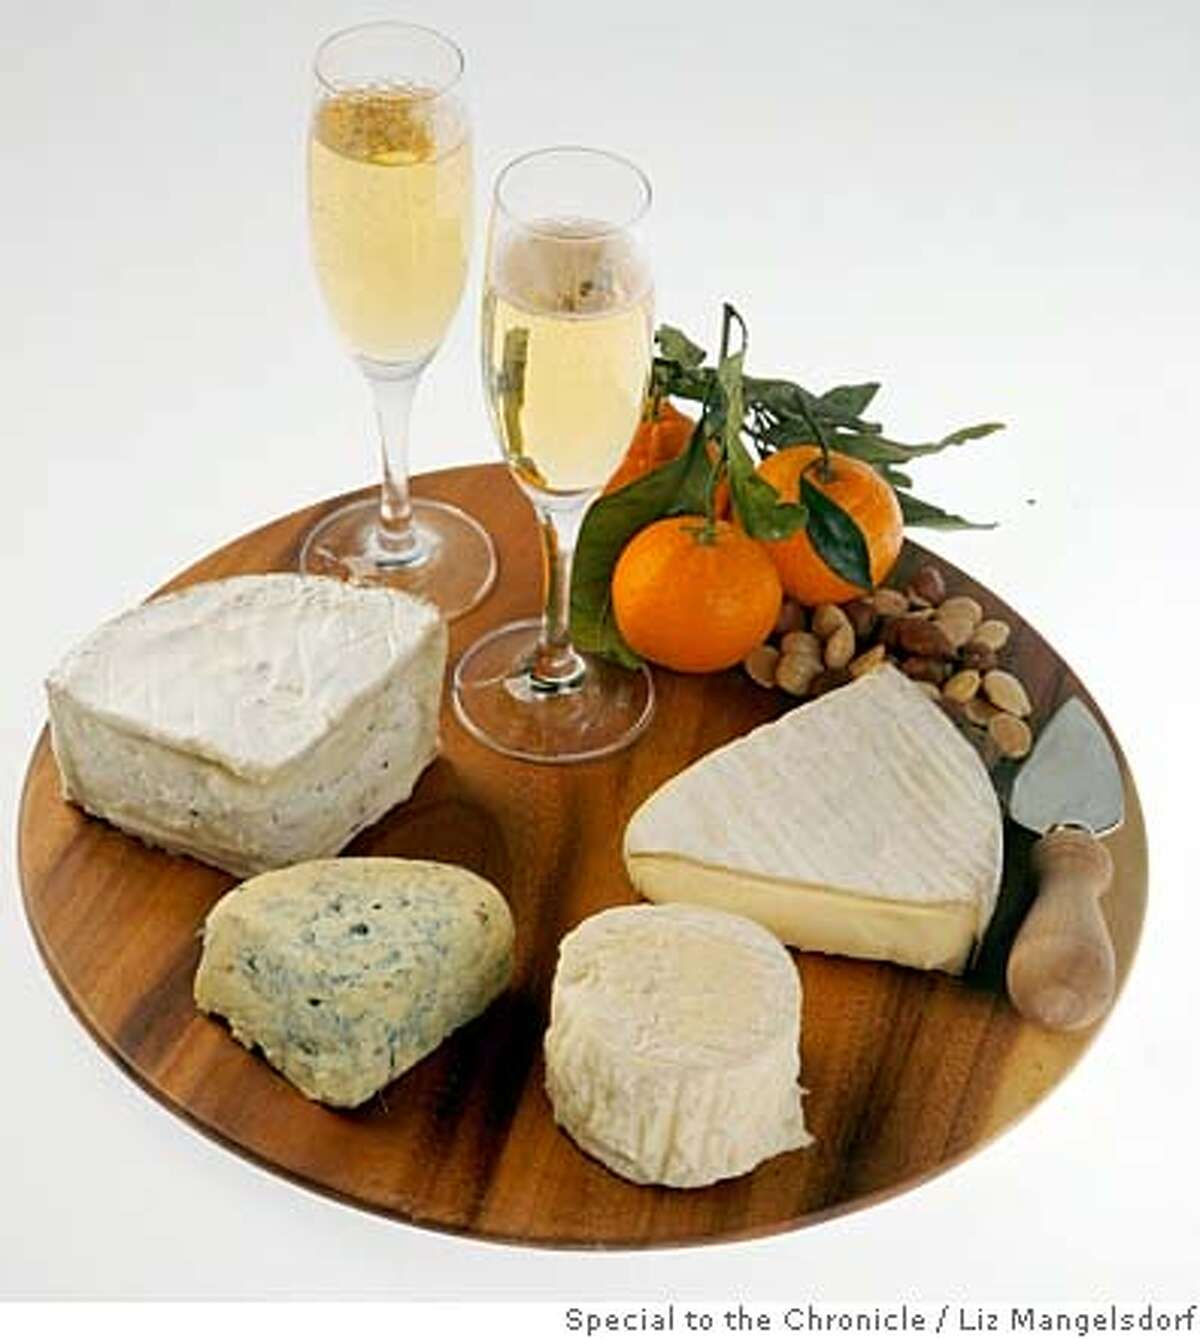 cheese30_027_lm.jpg Four cheeses, including Edel de Cleron, LaTur, Truffle Tremor and Cashel blue, for the Bubbly Issue. Photo by Liz Mangelsdorf, Special to the Chronicle Event on 11/24/07 in San Francisco. MANDATORY CREDIT FOR PHOTOG AND SF CHRONICLE/NO SALES-MAGS OUT